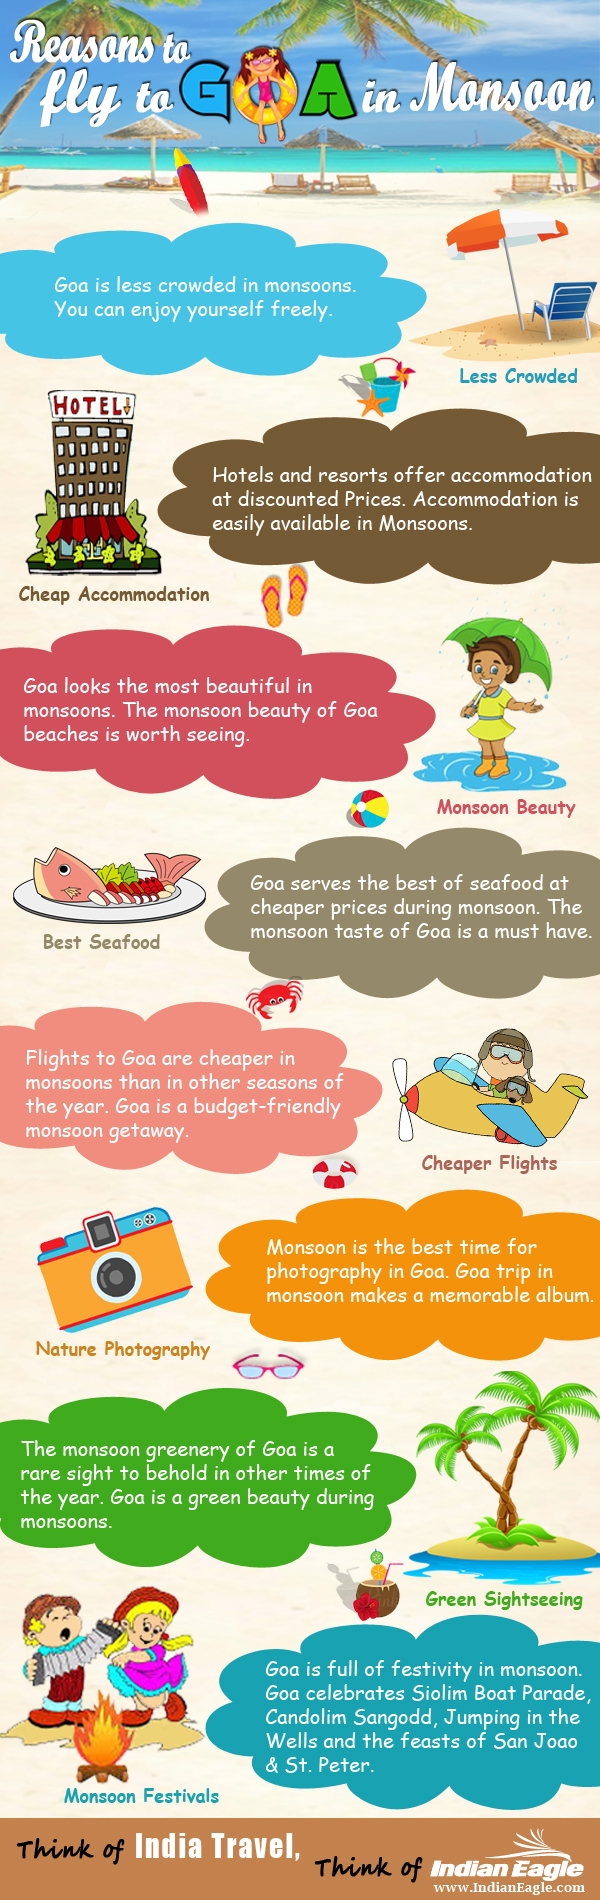 best time to visit Goa, best season to visit Goa, cheap flights to Goa, reasons to visit Goa during monsoon, Indian monsoon destinations